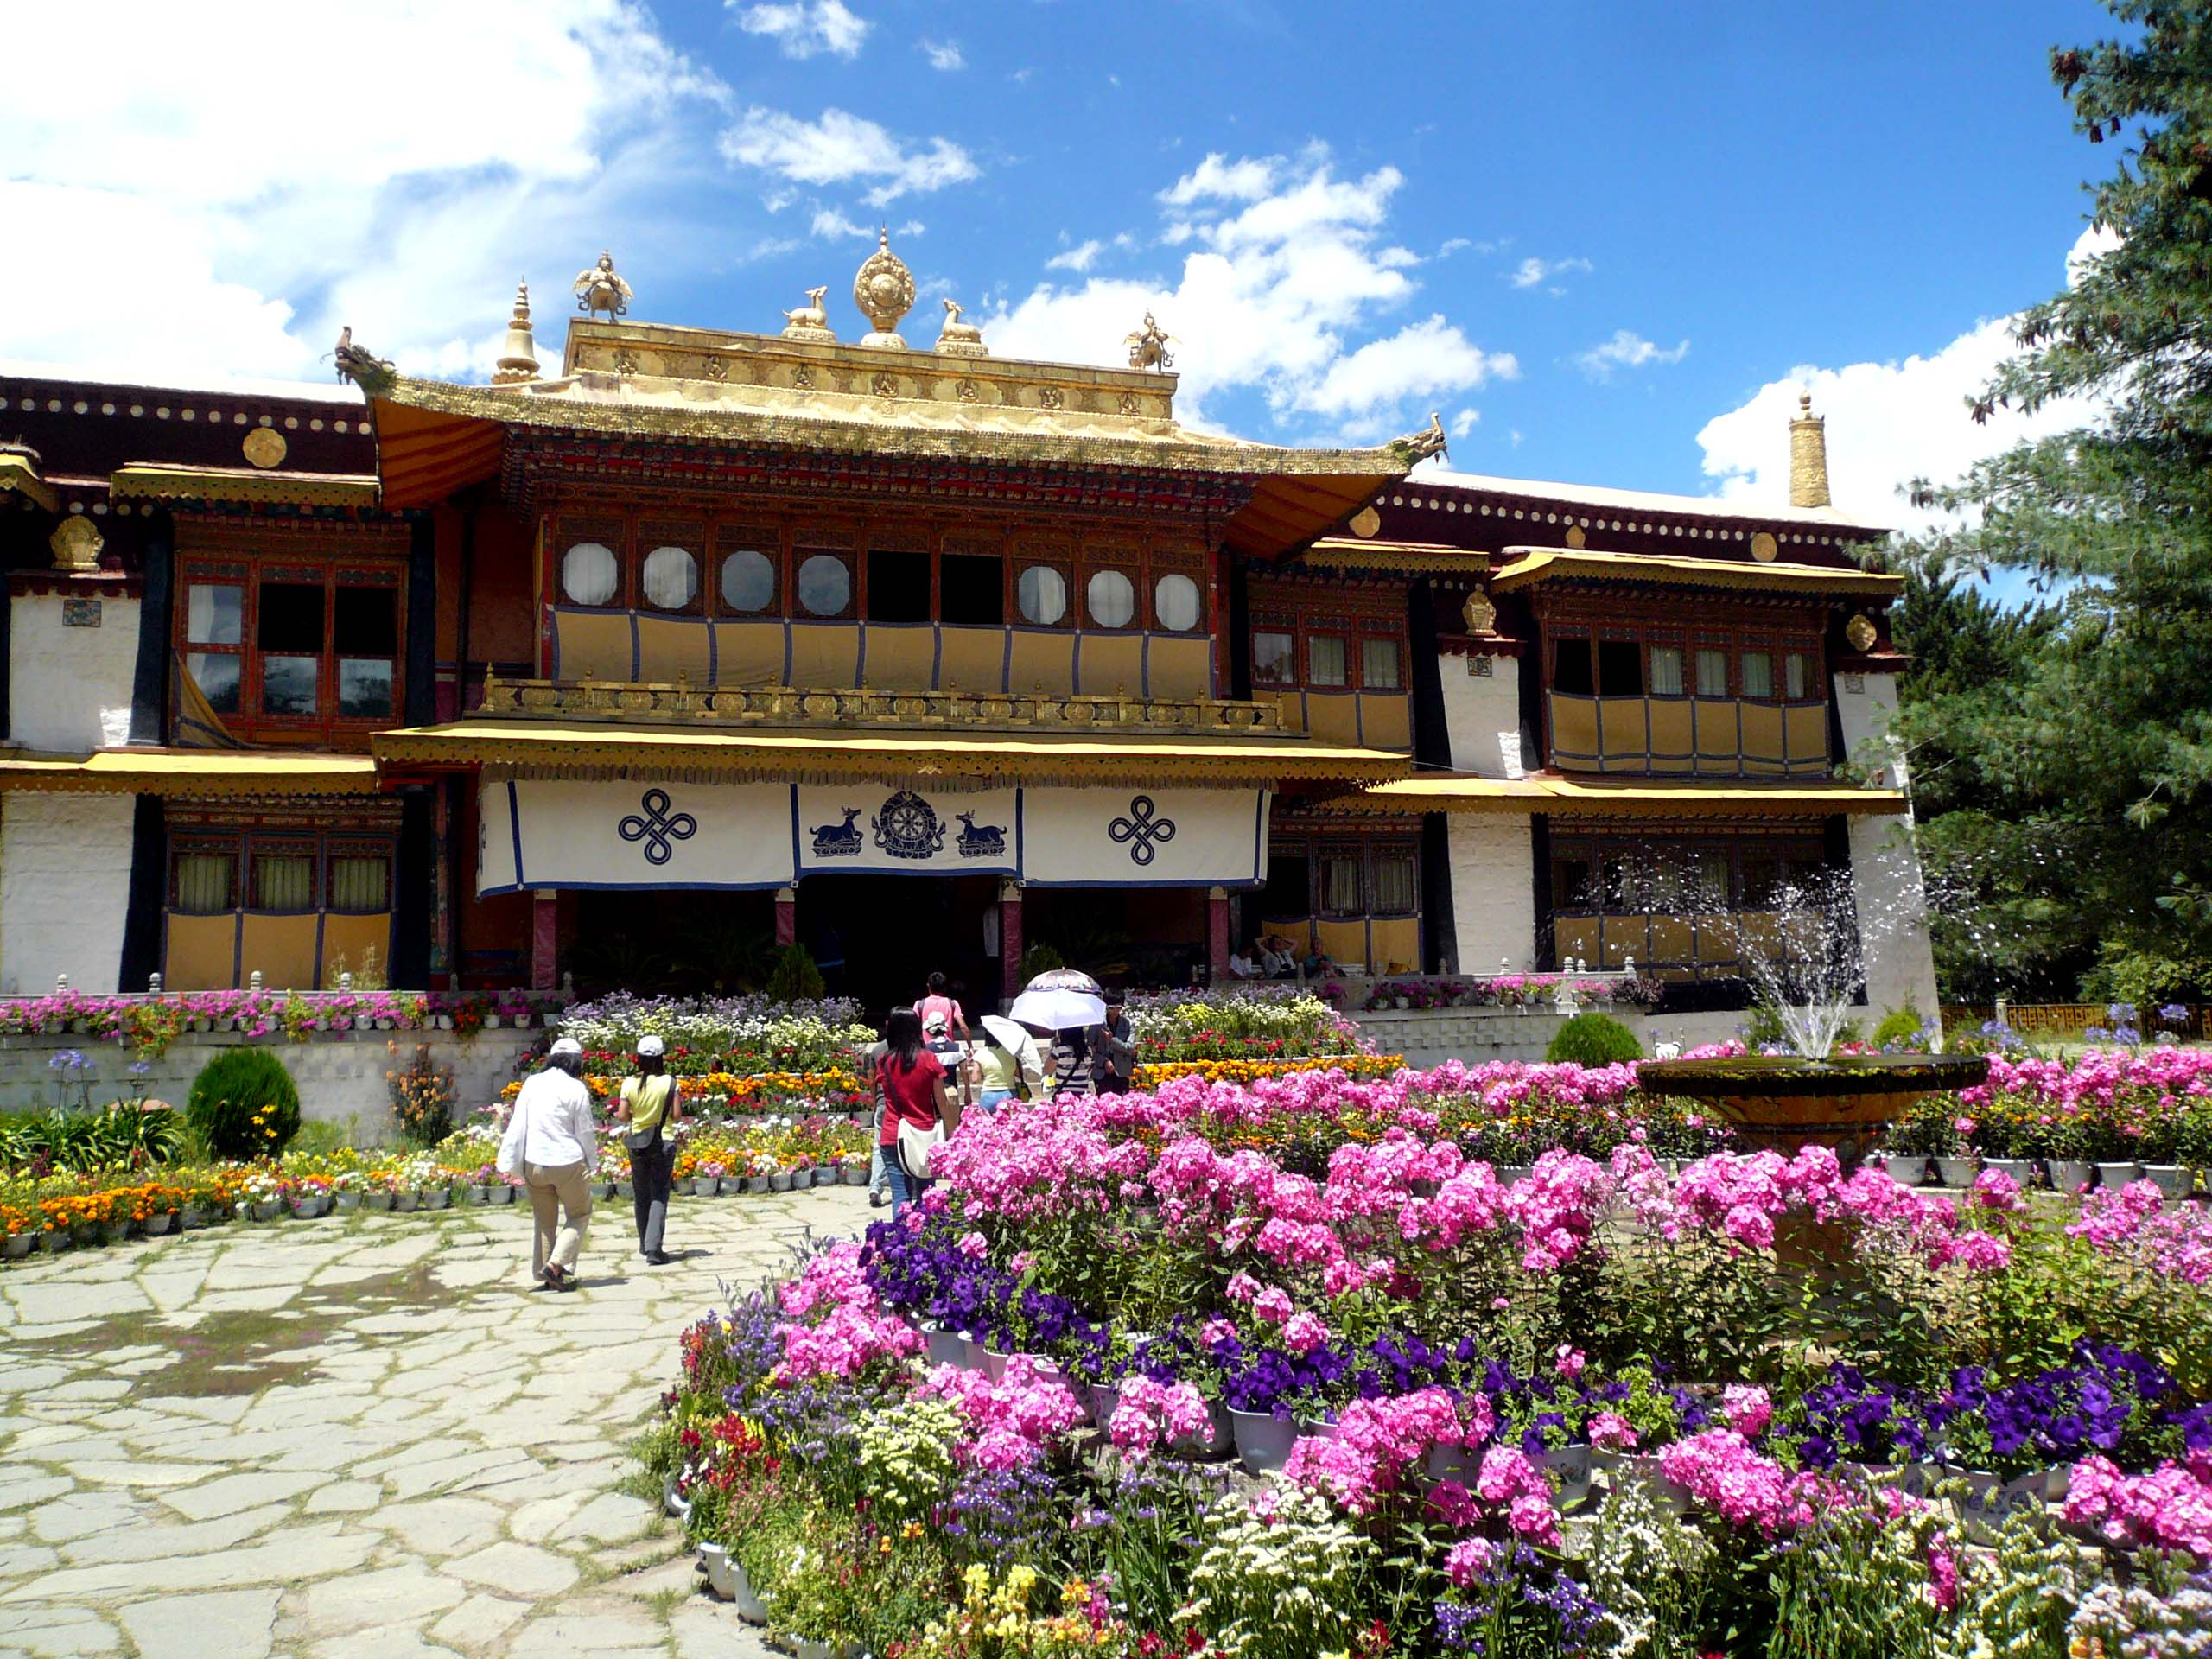 The Famous Summer Palace of the Dalai Lamas